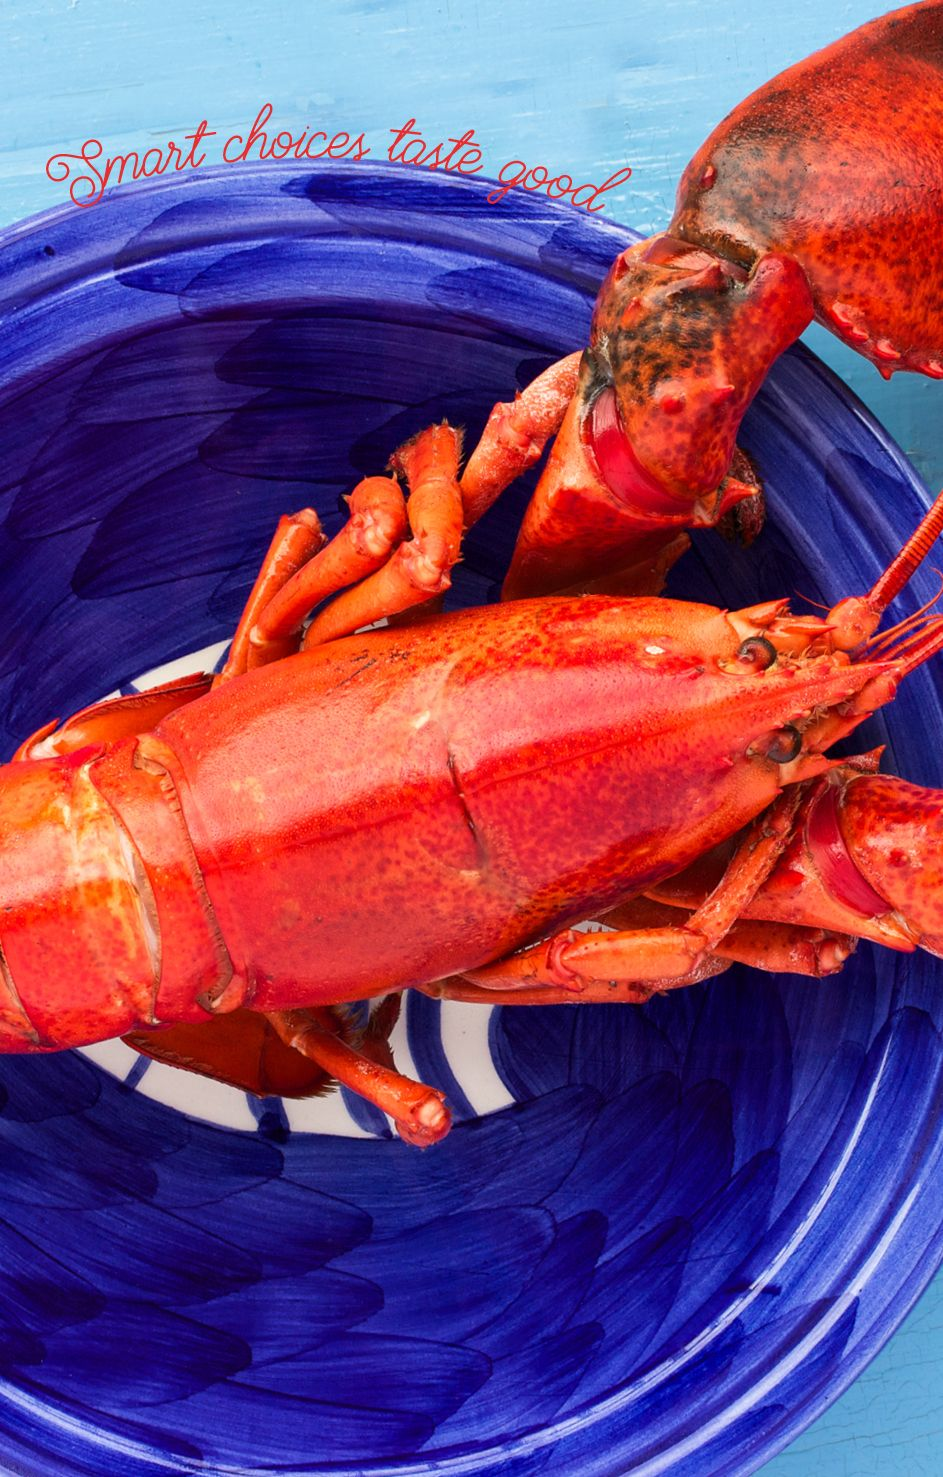 Usda Nutrition Data Shows That When Compared To Other Proteins Lobster Is Lowest In Calories And Saturate Nutrition Data Gluten Free 21 Day Fix Seafood Dinner